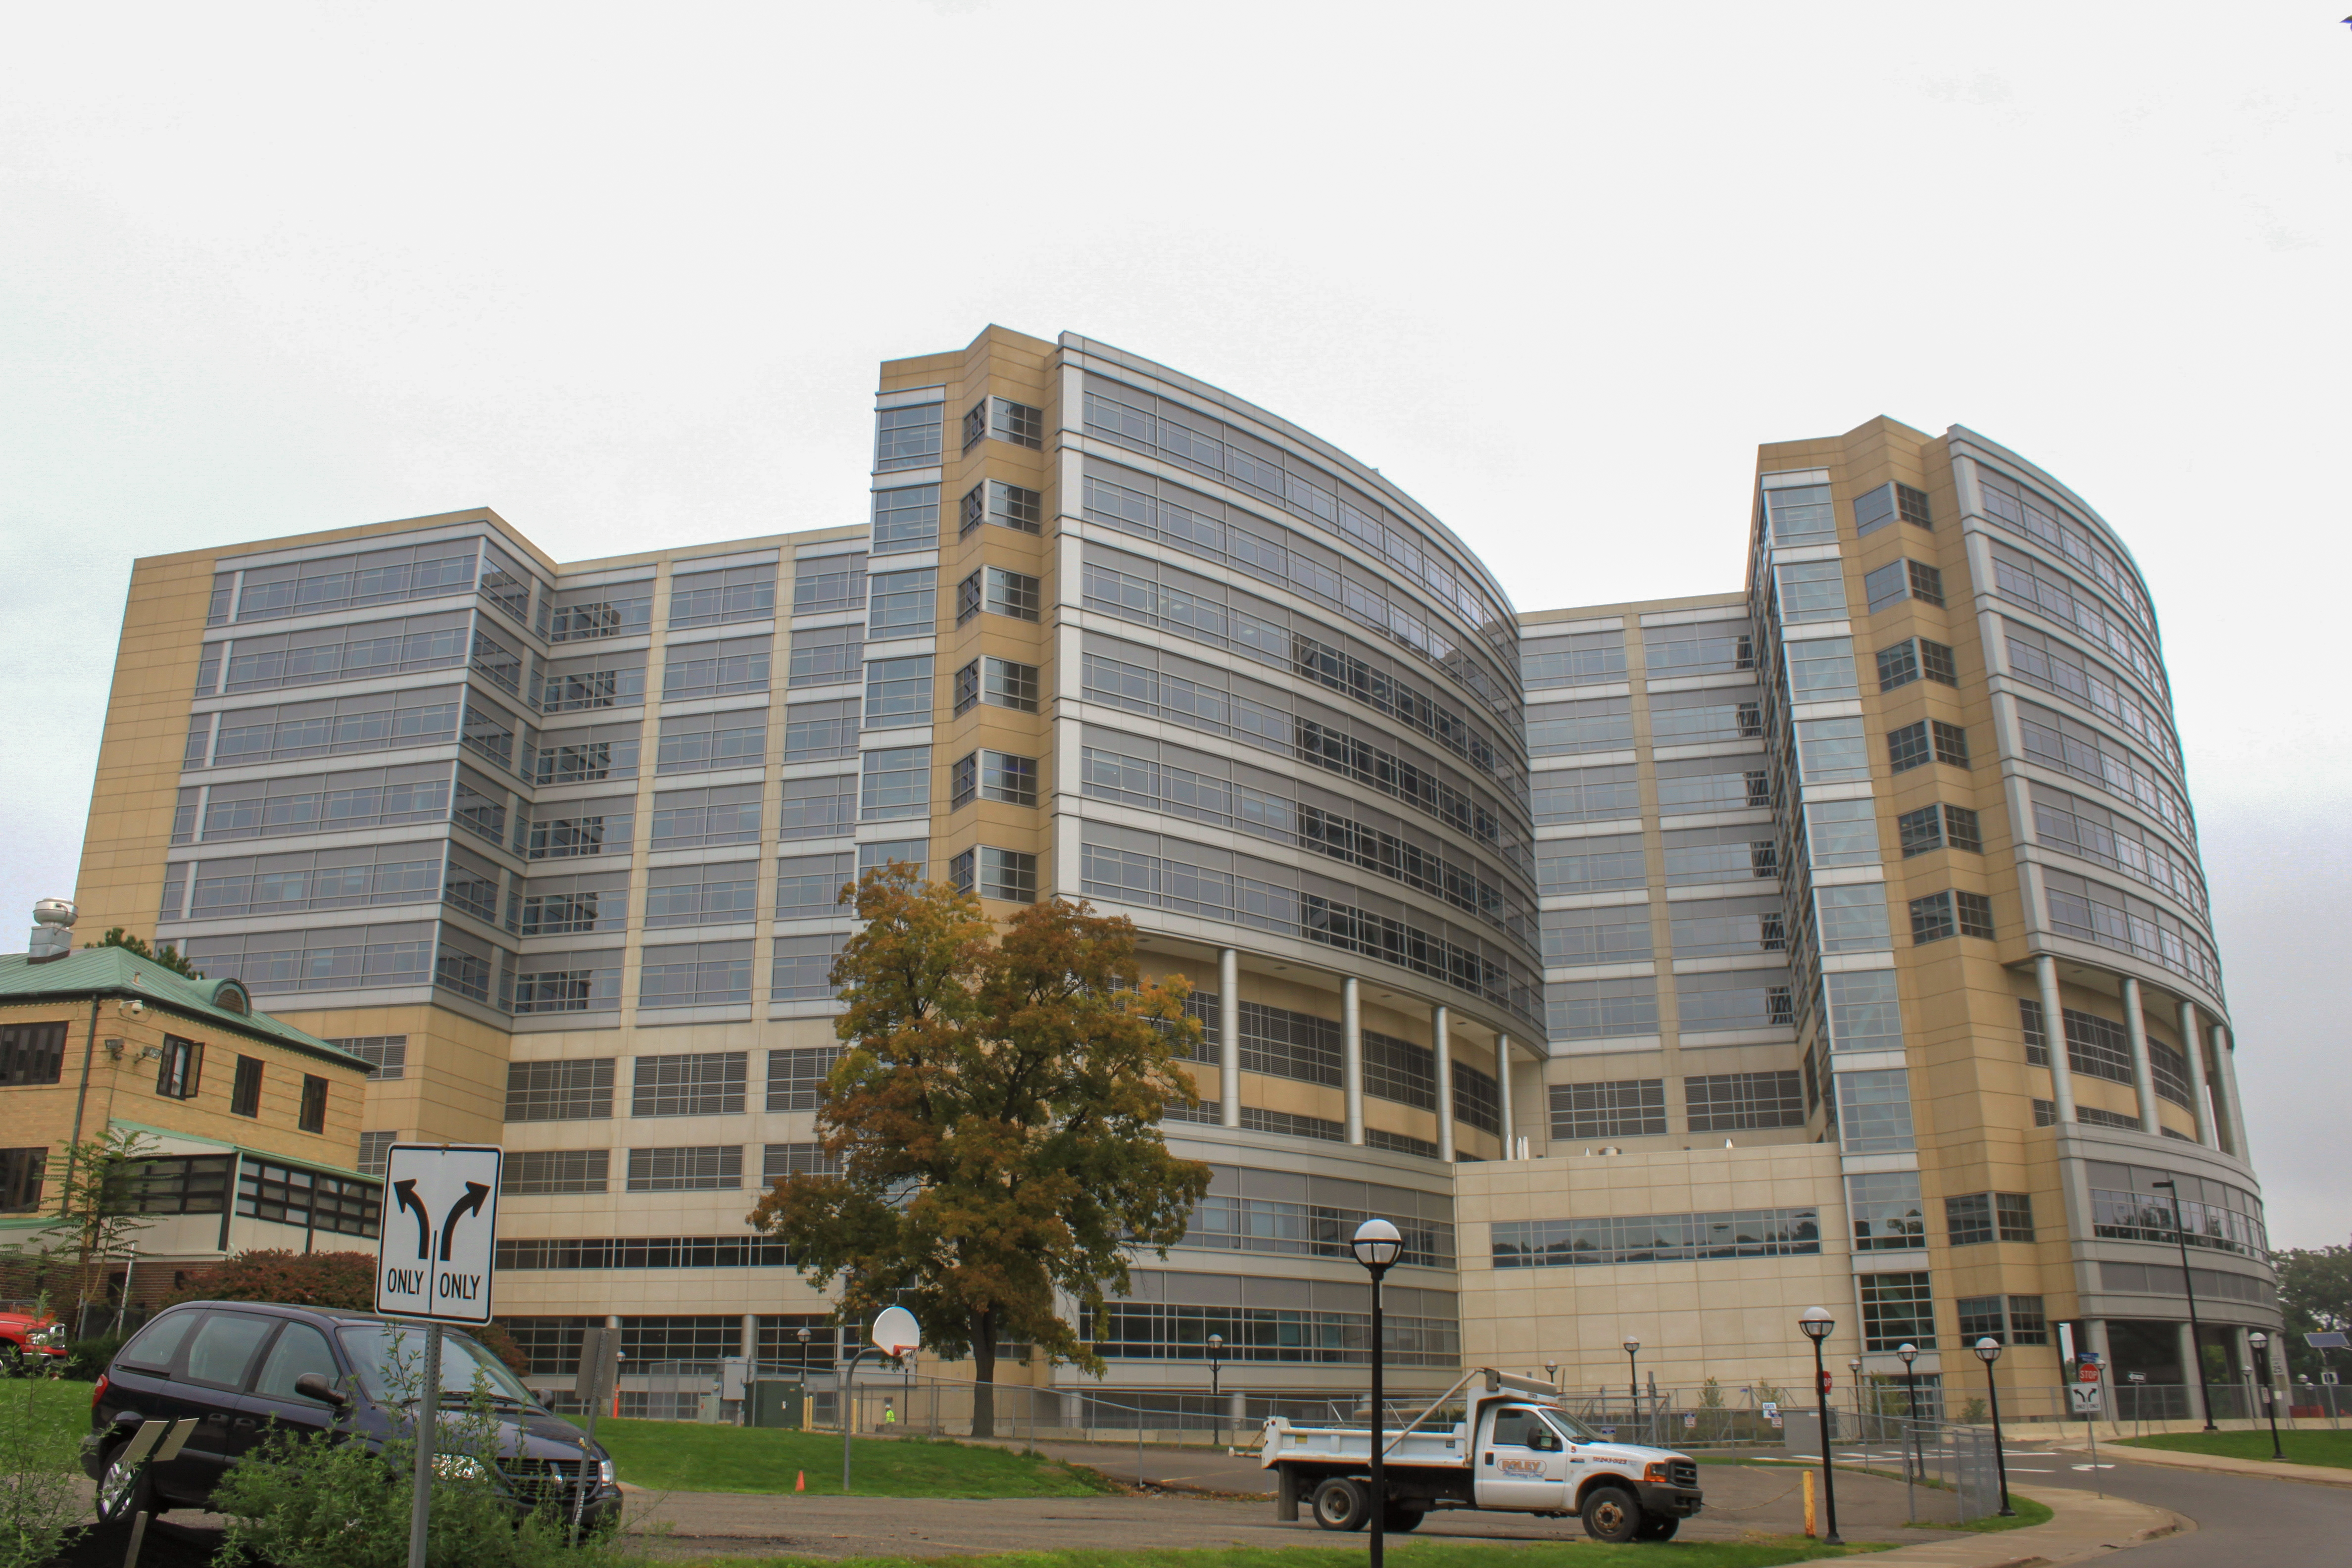 C S  Mott Children's Hospital - Wikipedia